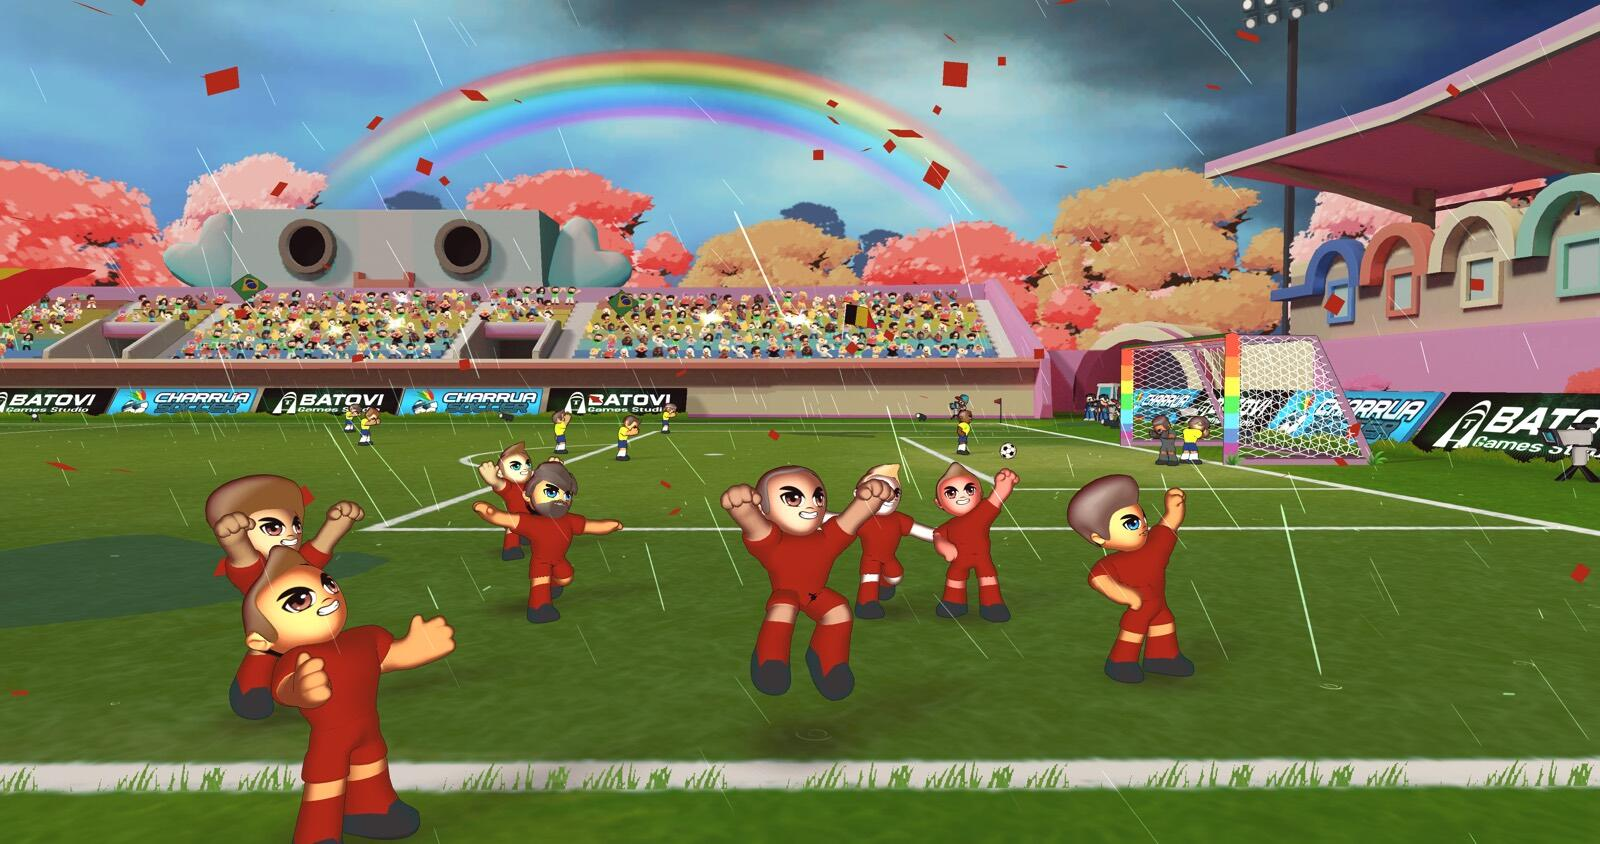 Apple Arcade scores a goal with new Charrua Soccer game